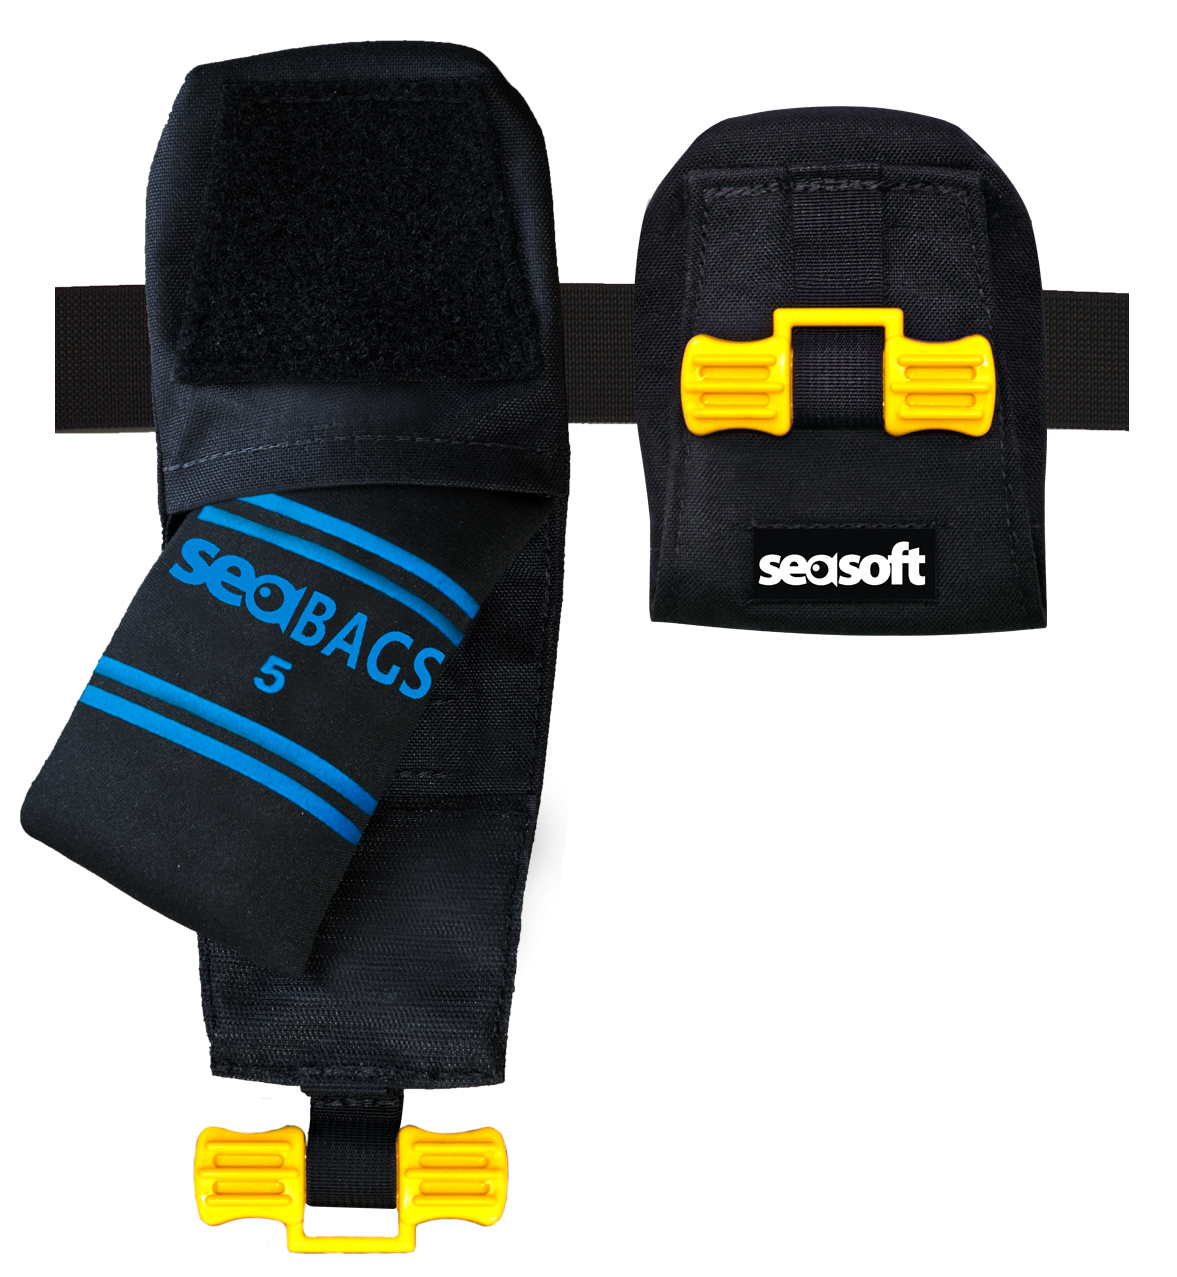 SEASOFT's TACTICAL TRIM POCKETS™